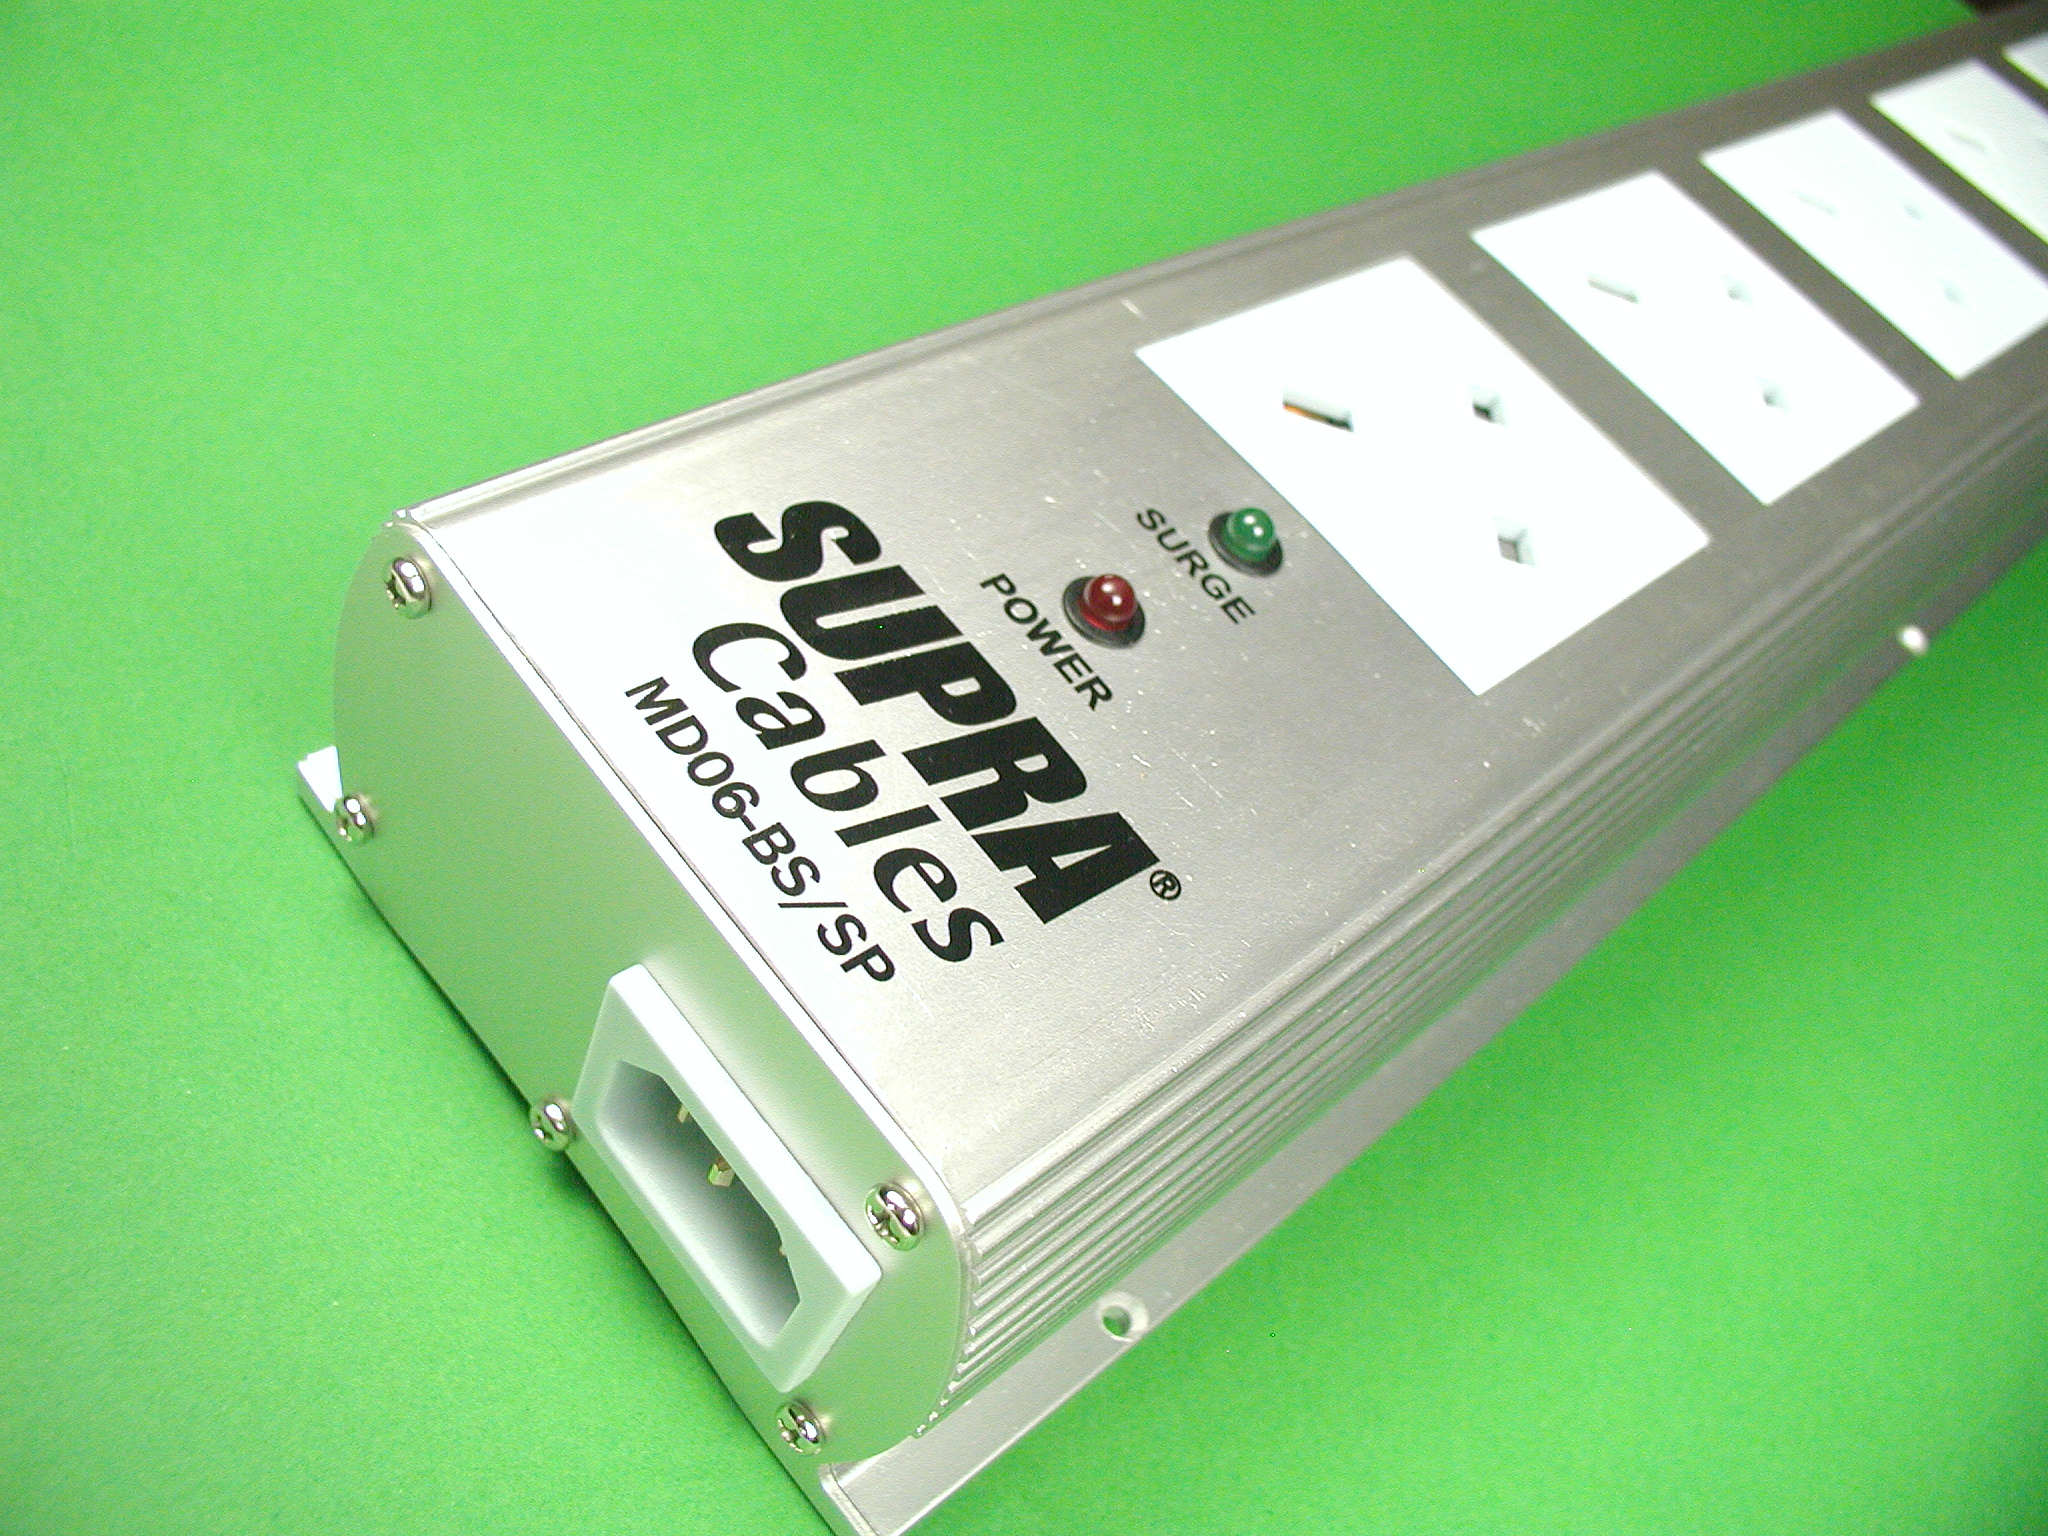 Supra LoRad MD06-BS/SP 6 way UK Surge Protected Shielded Mains Block